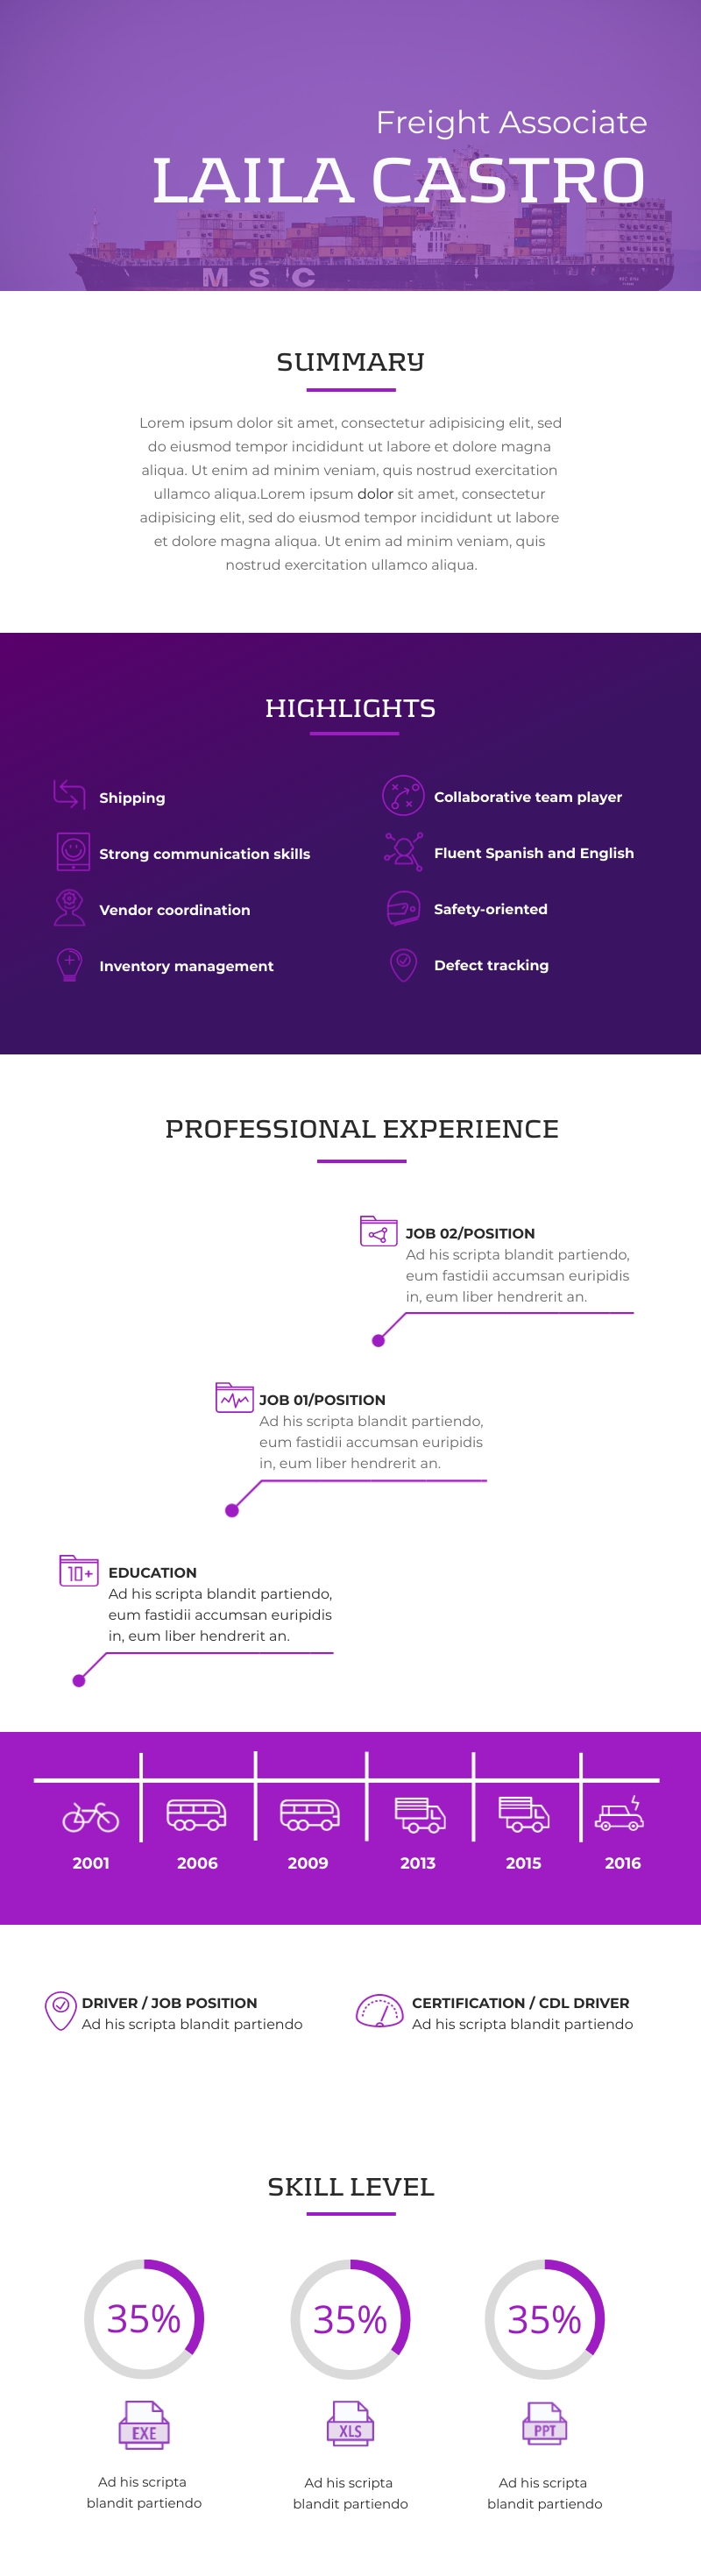 Freight Associate Resume 2.0 - Infographic Template